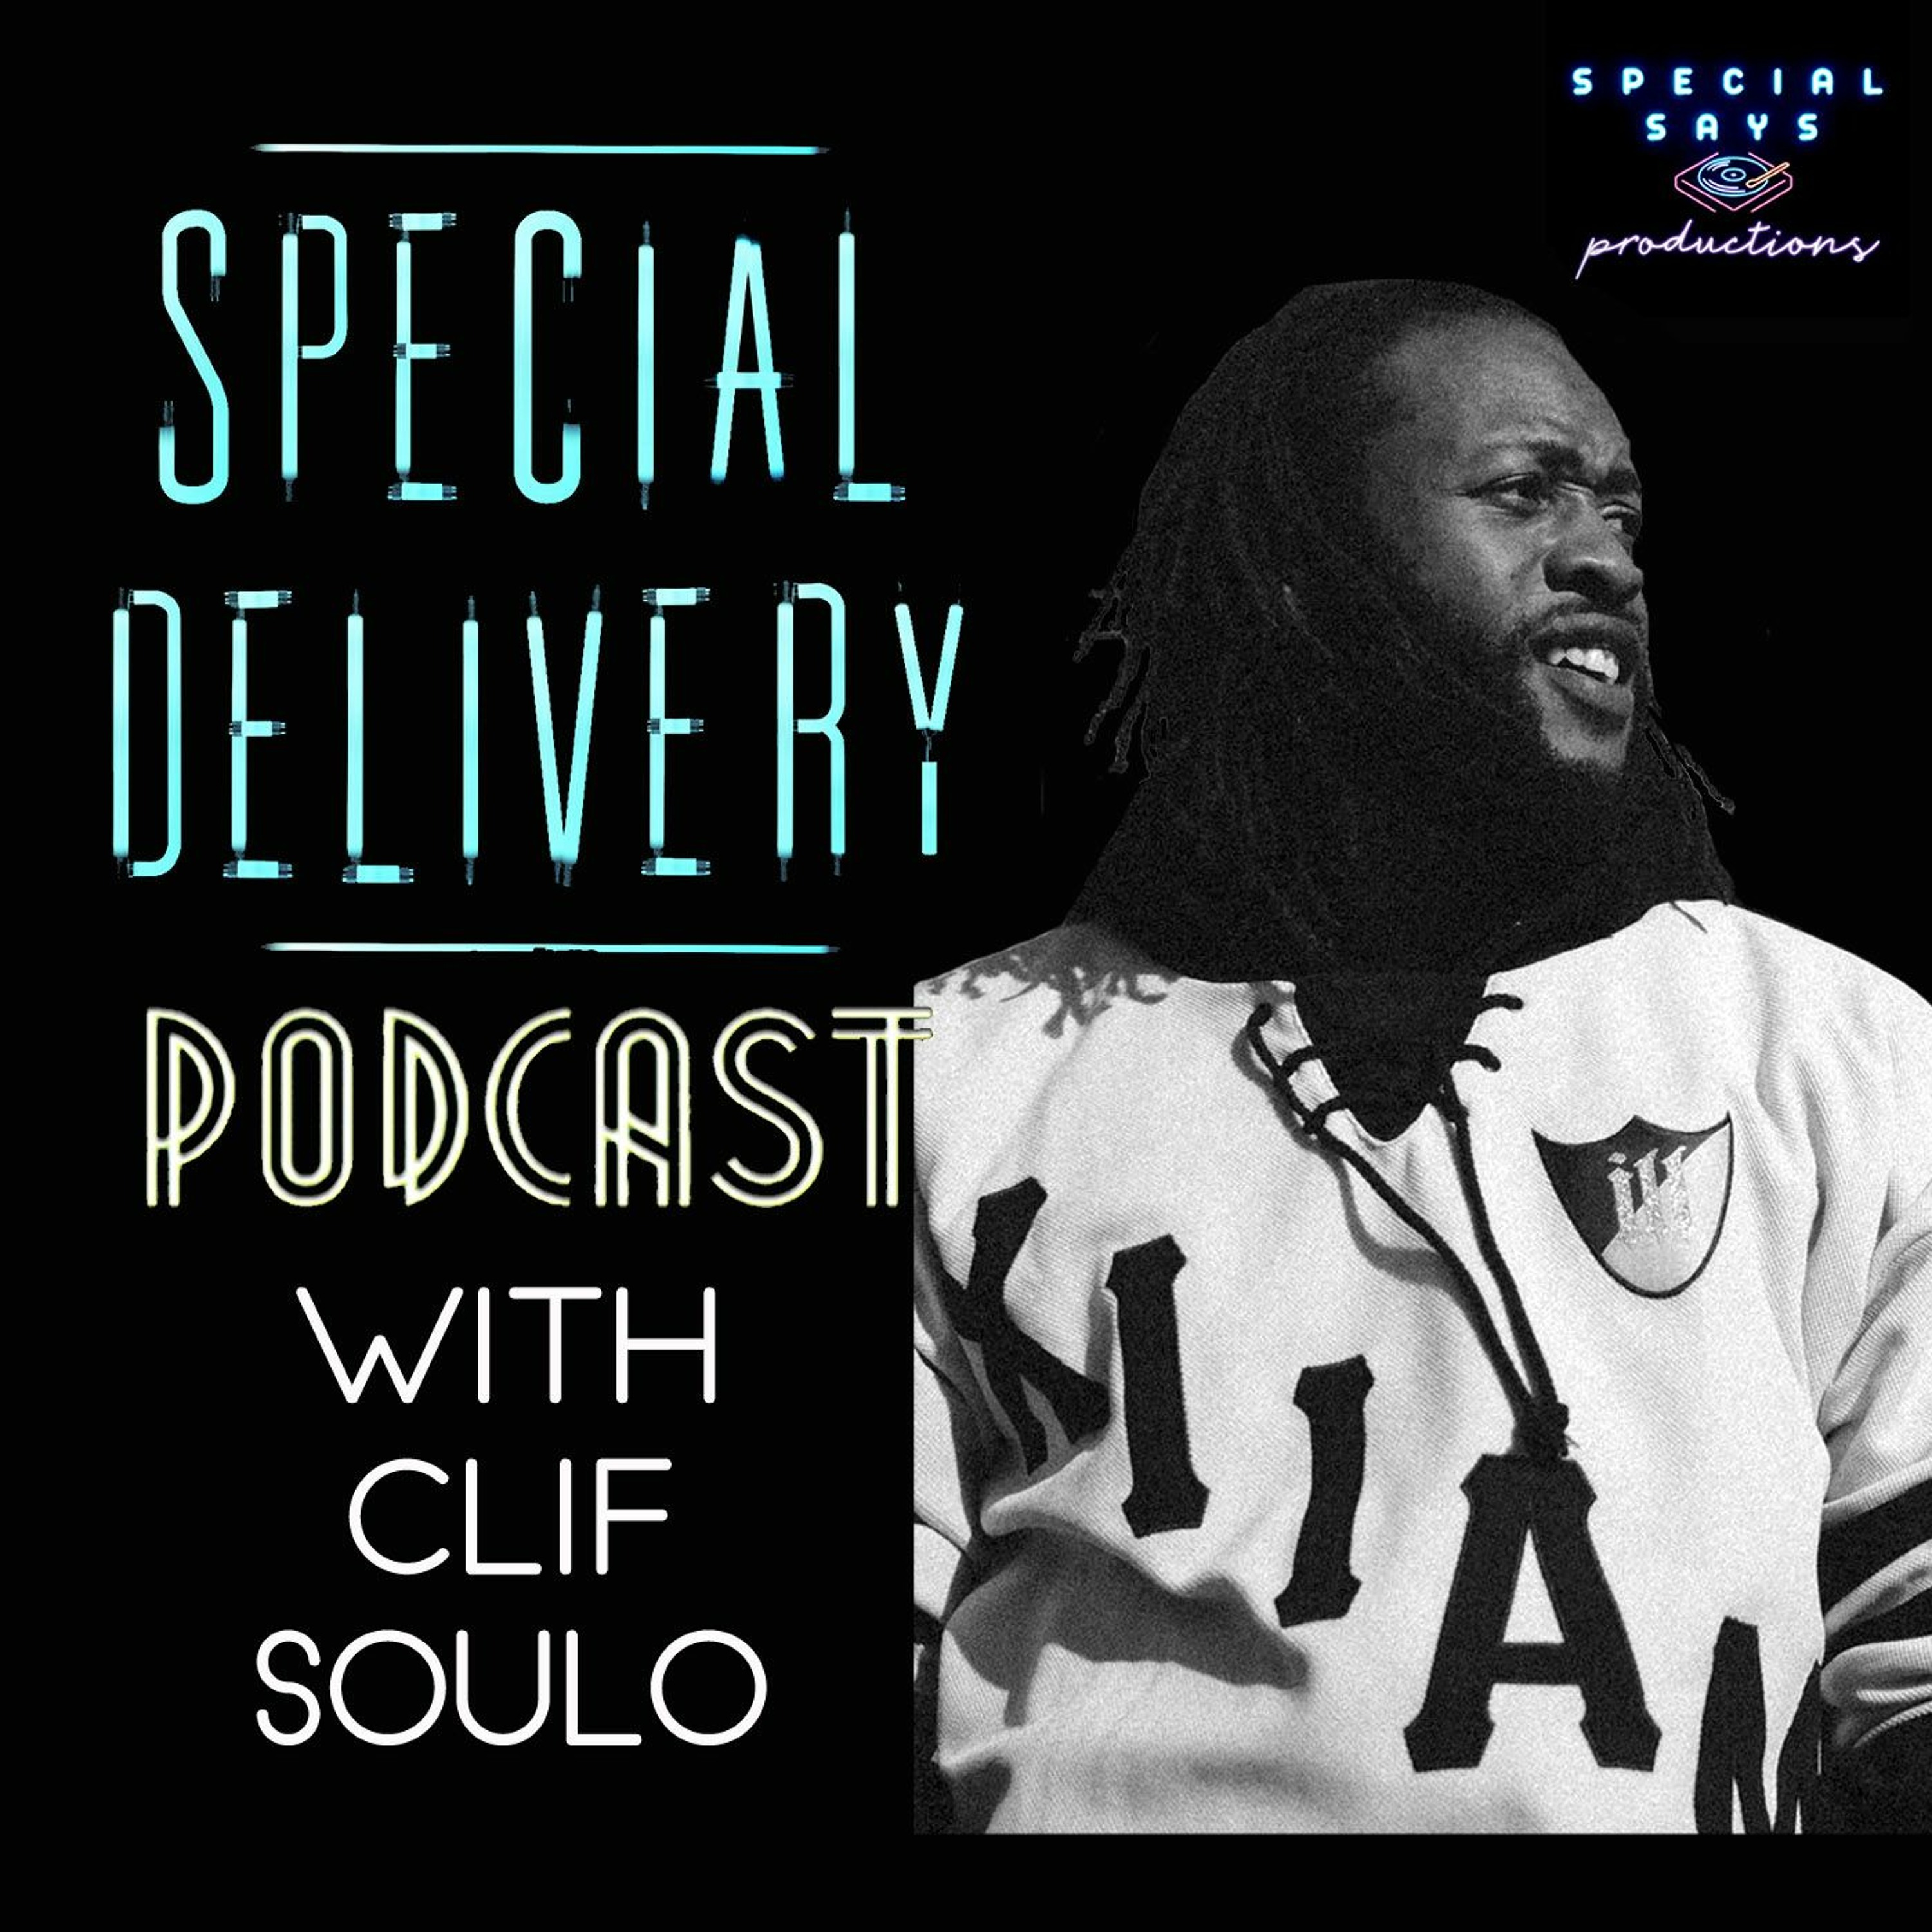 Bunchy Carter Grooves with Clif Soulo   Special Delivery